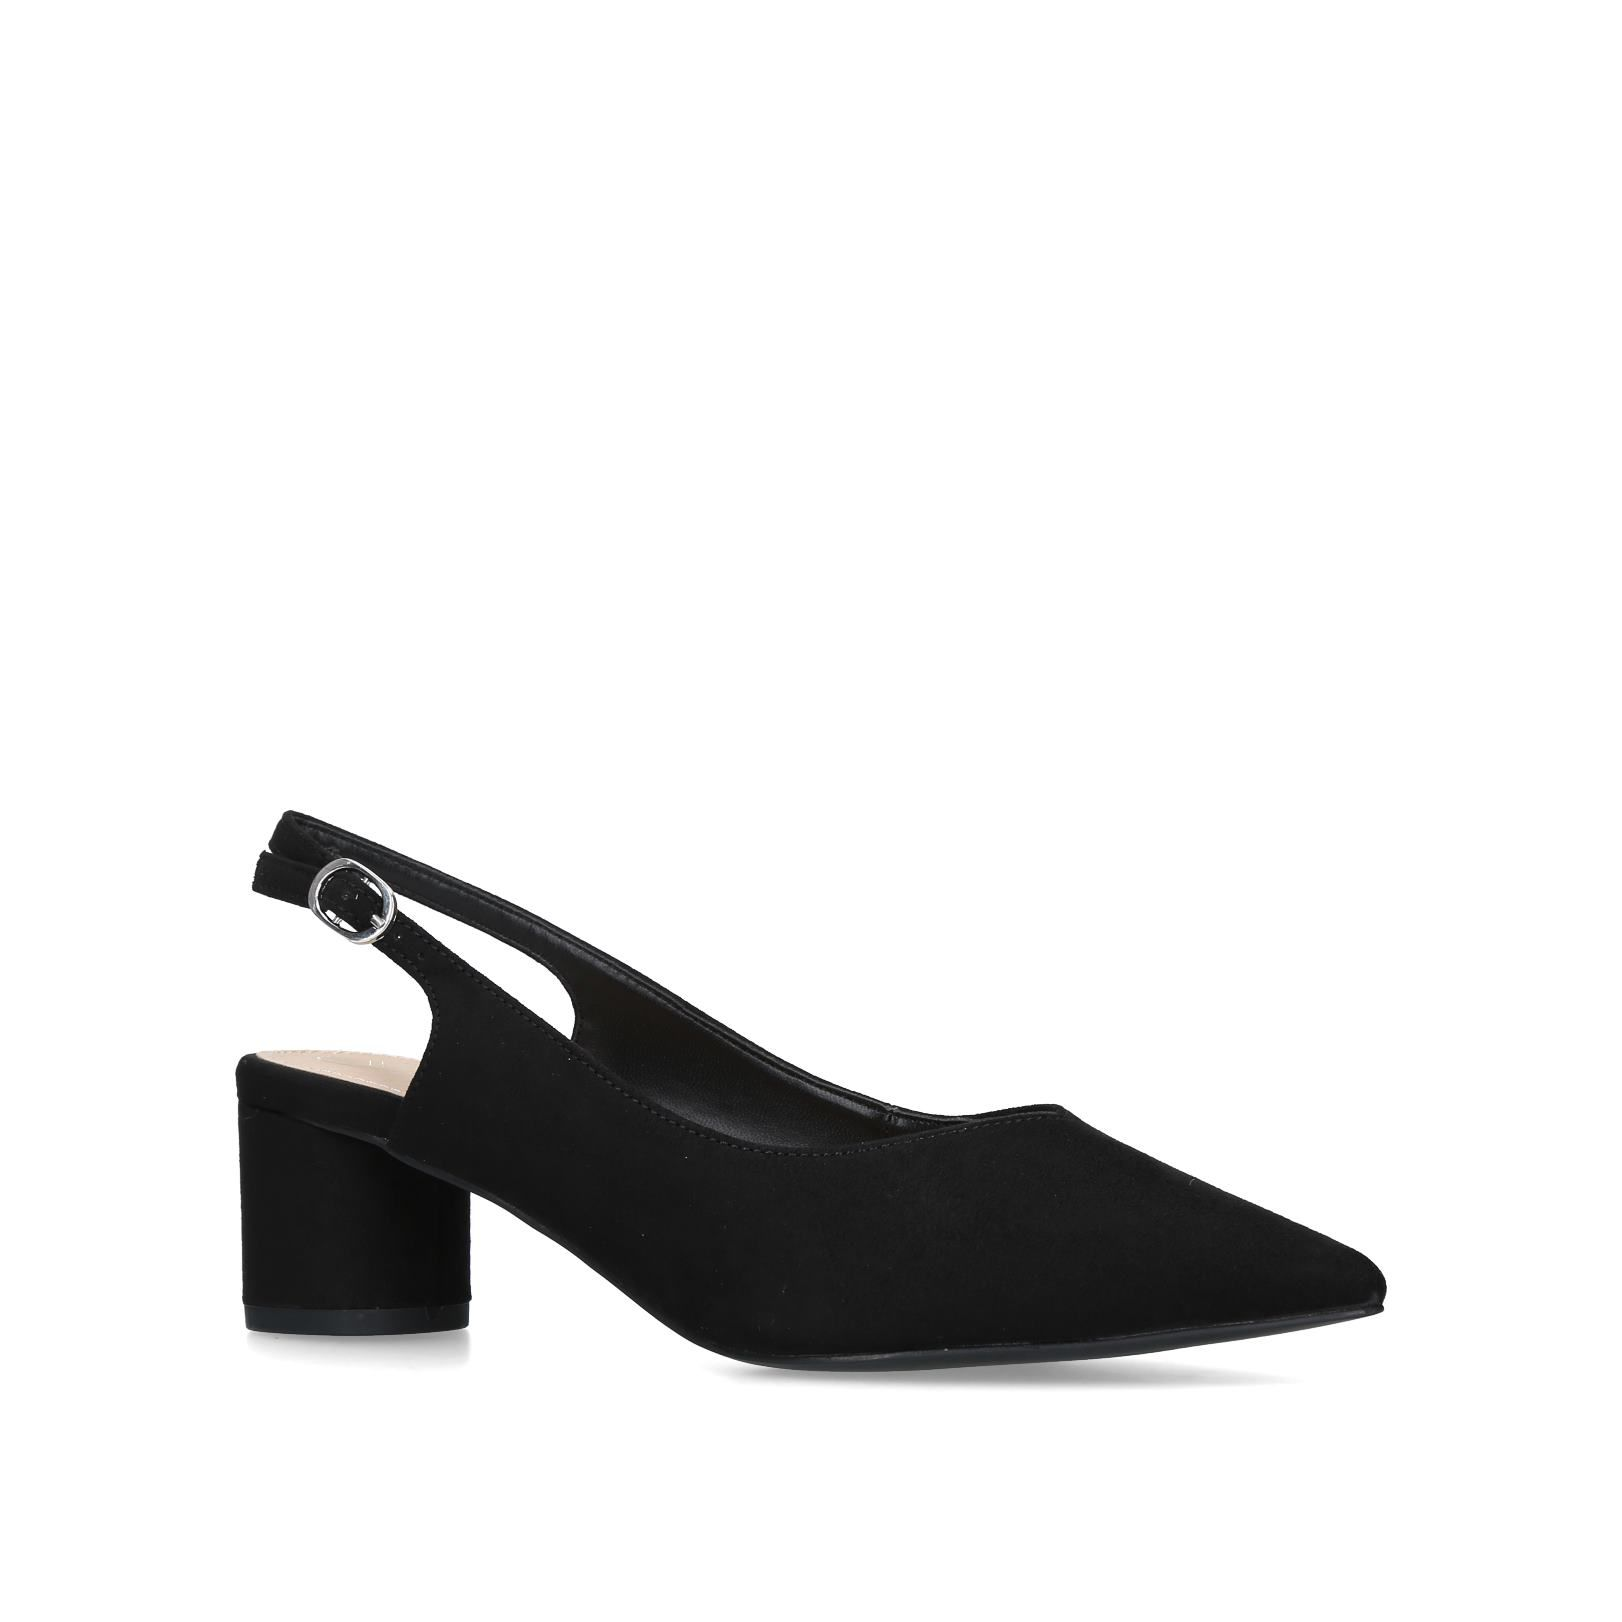 KG Cecily Courts, Black